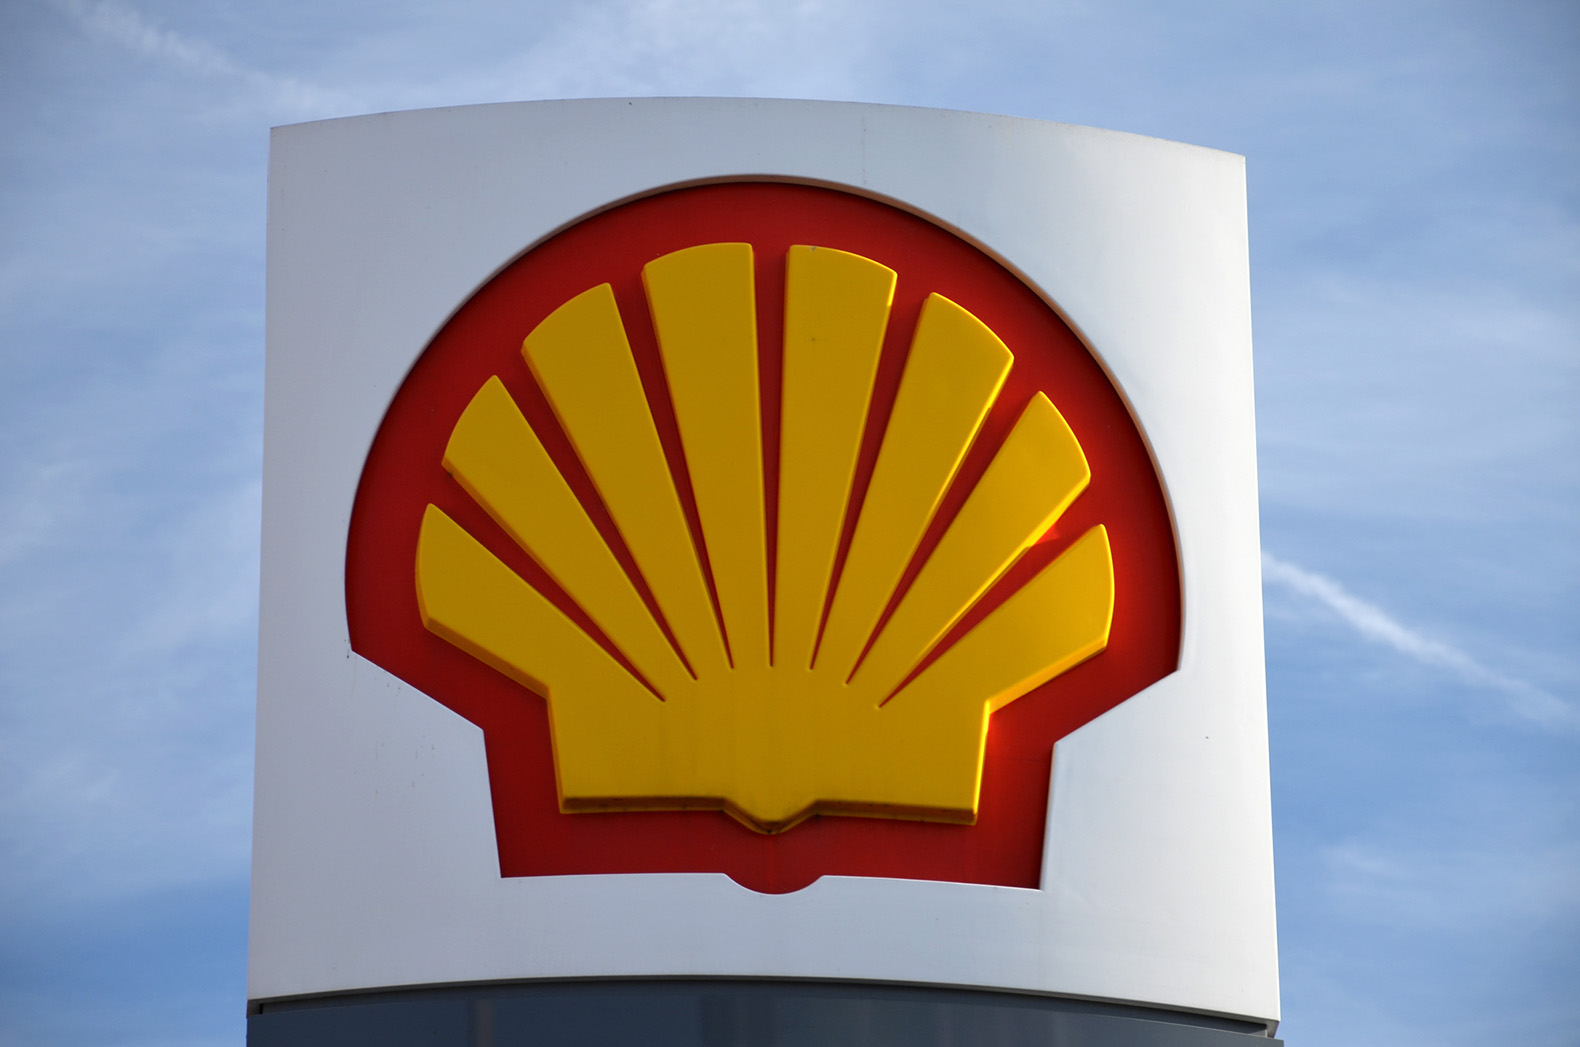 Shell oil just unveiled a plan to move the world away from fossil fuels